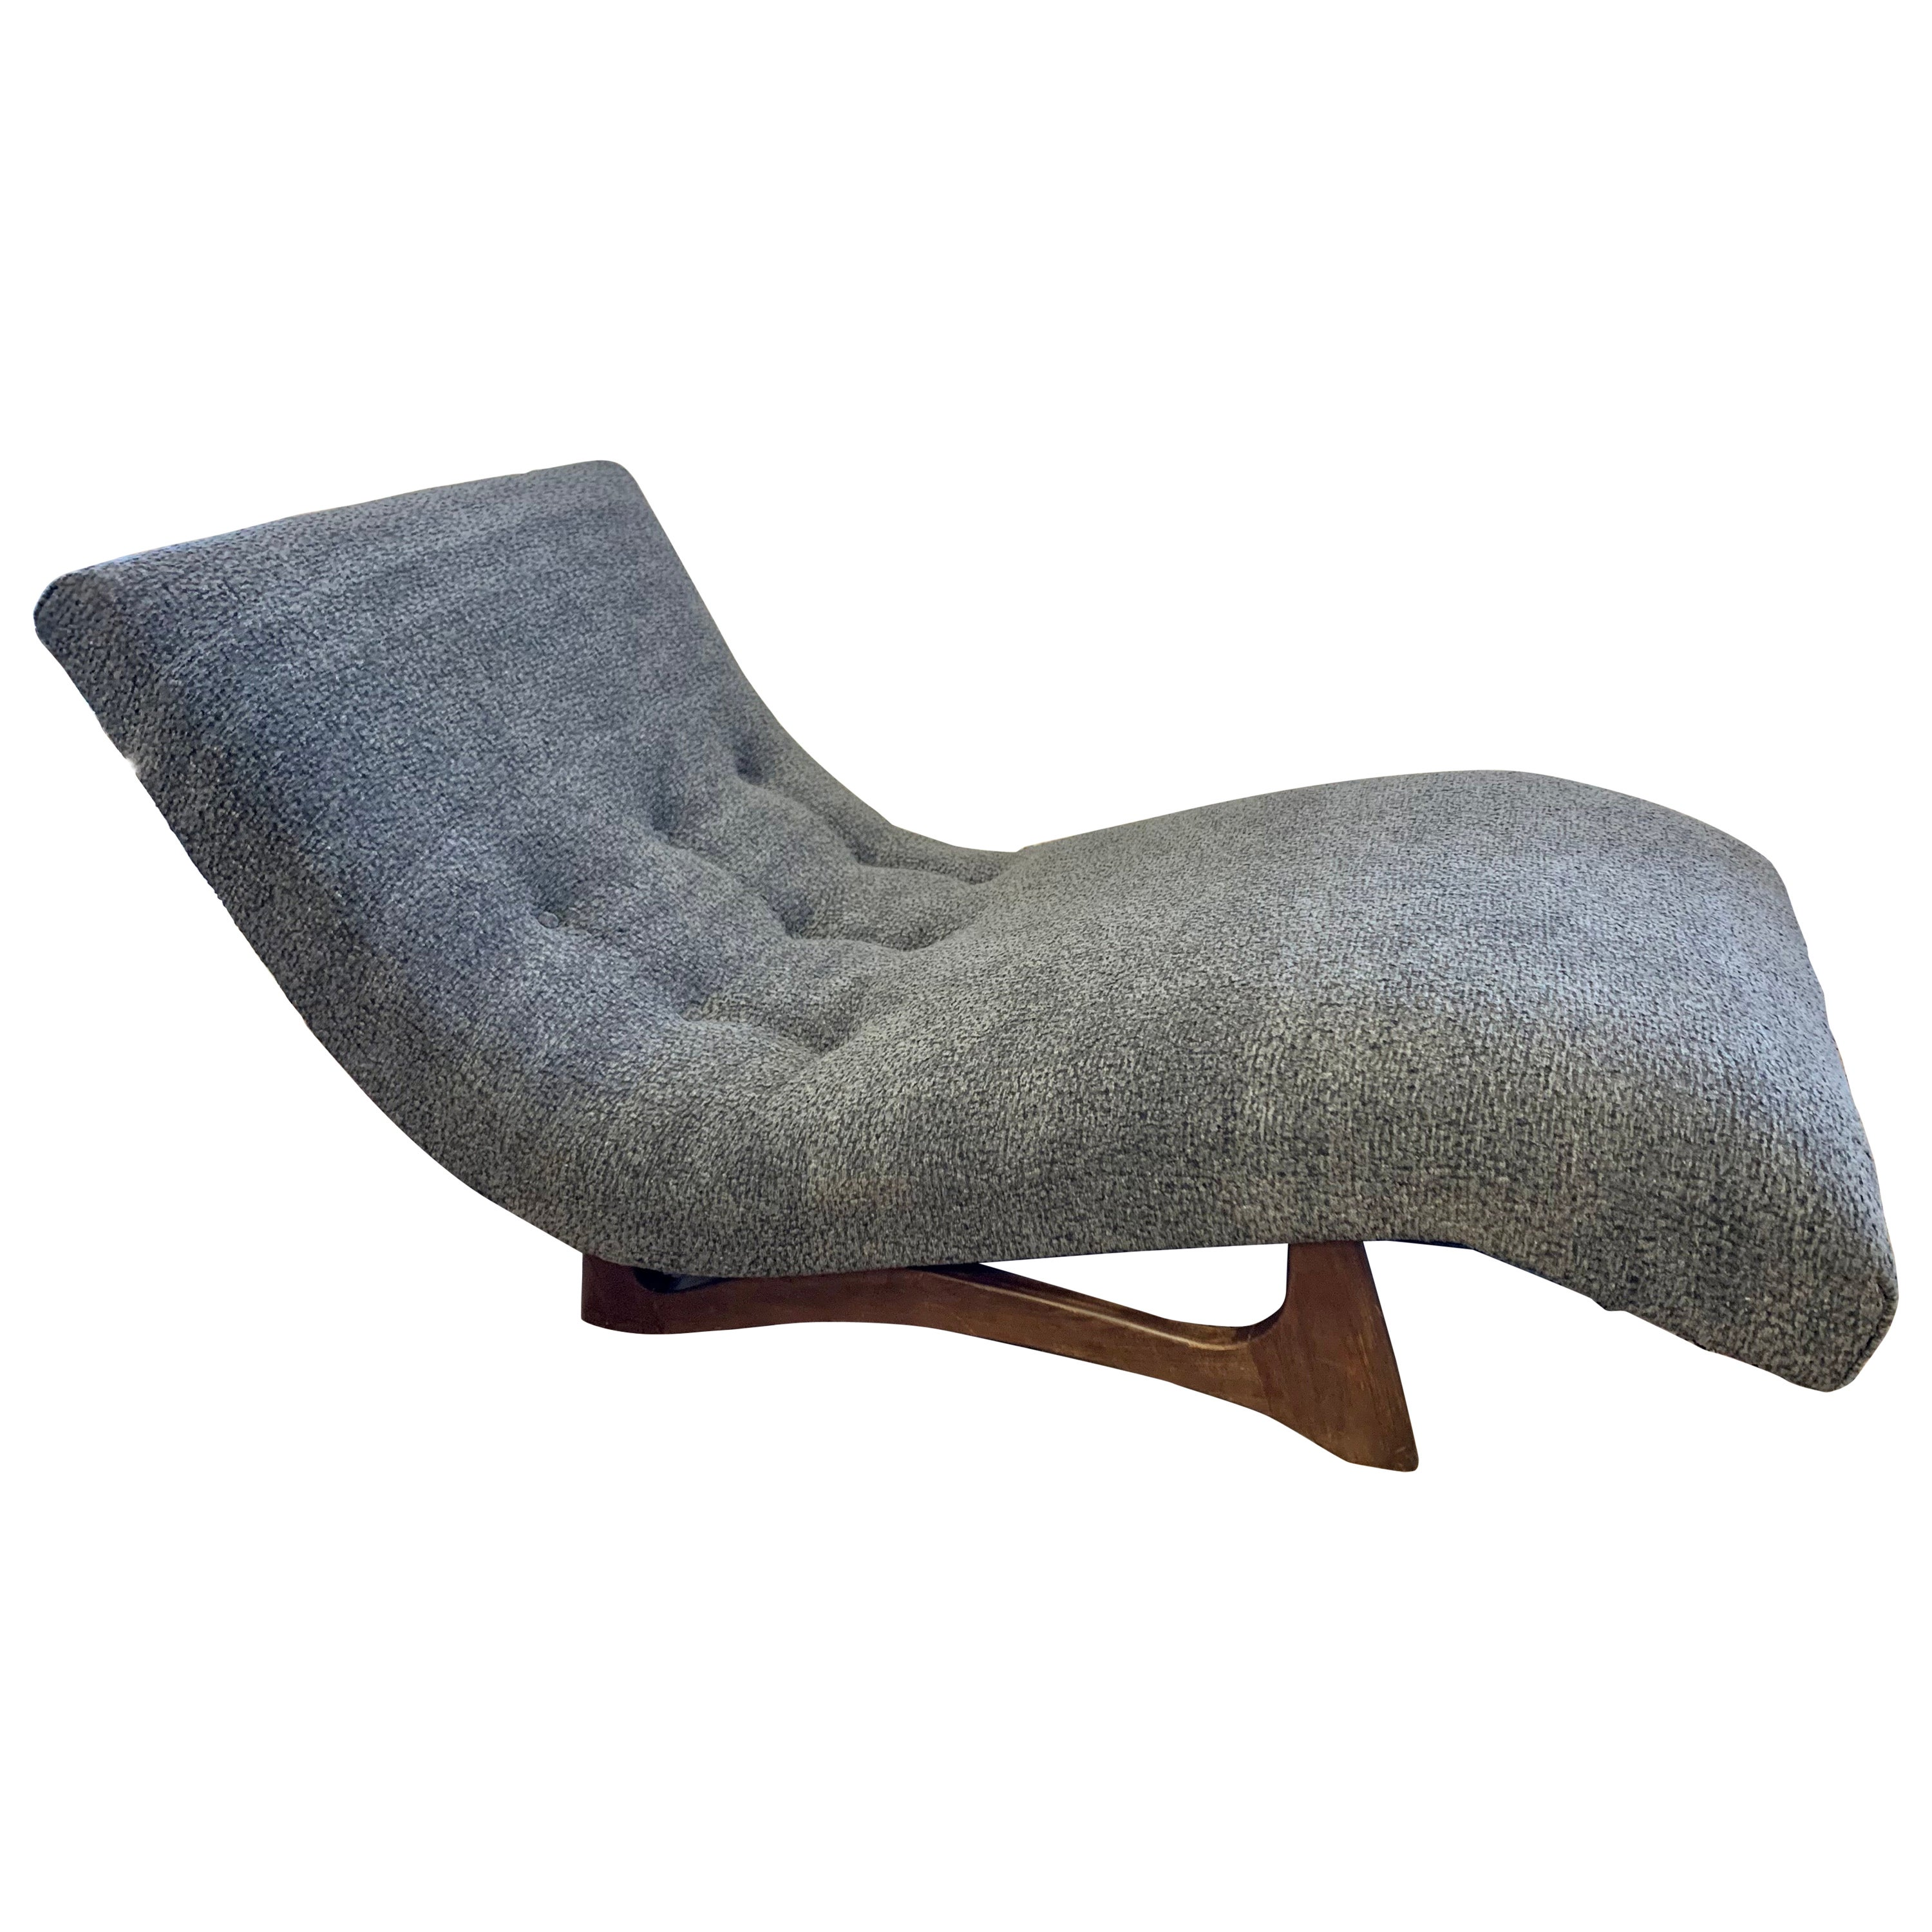 Mid-Century Modern Adrian Pearsall Wave Lounge Chaise in Boucle New Fabric